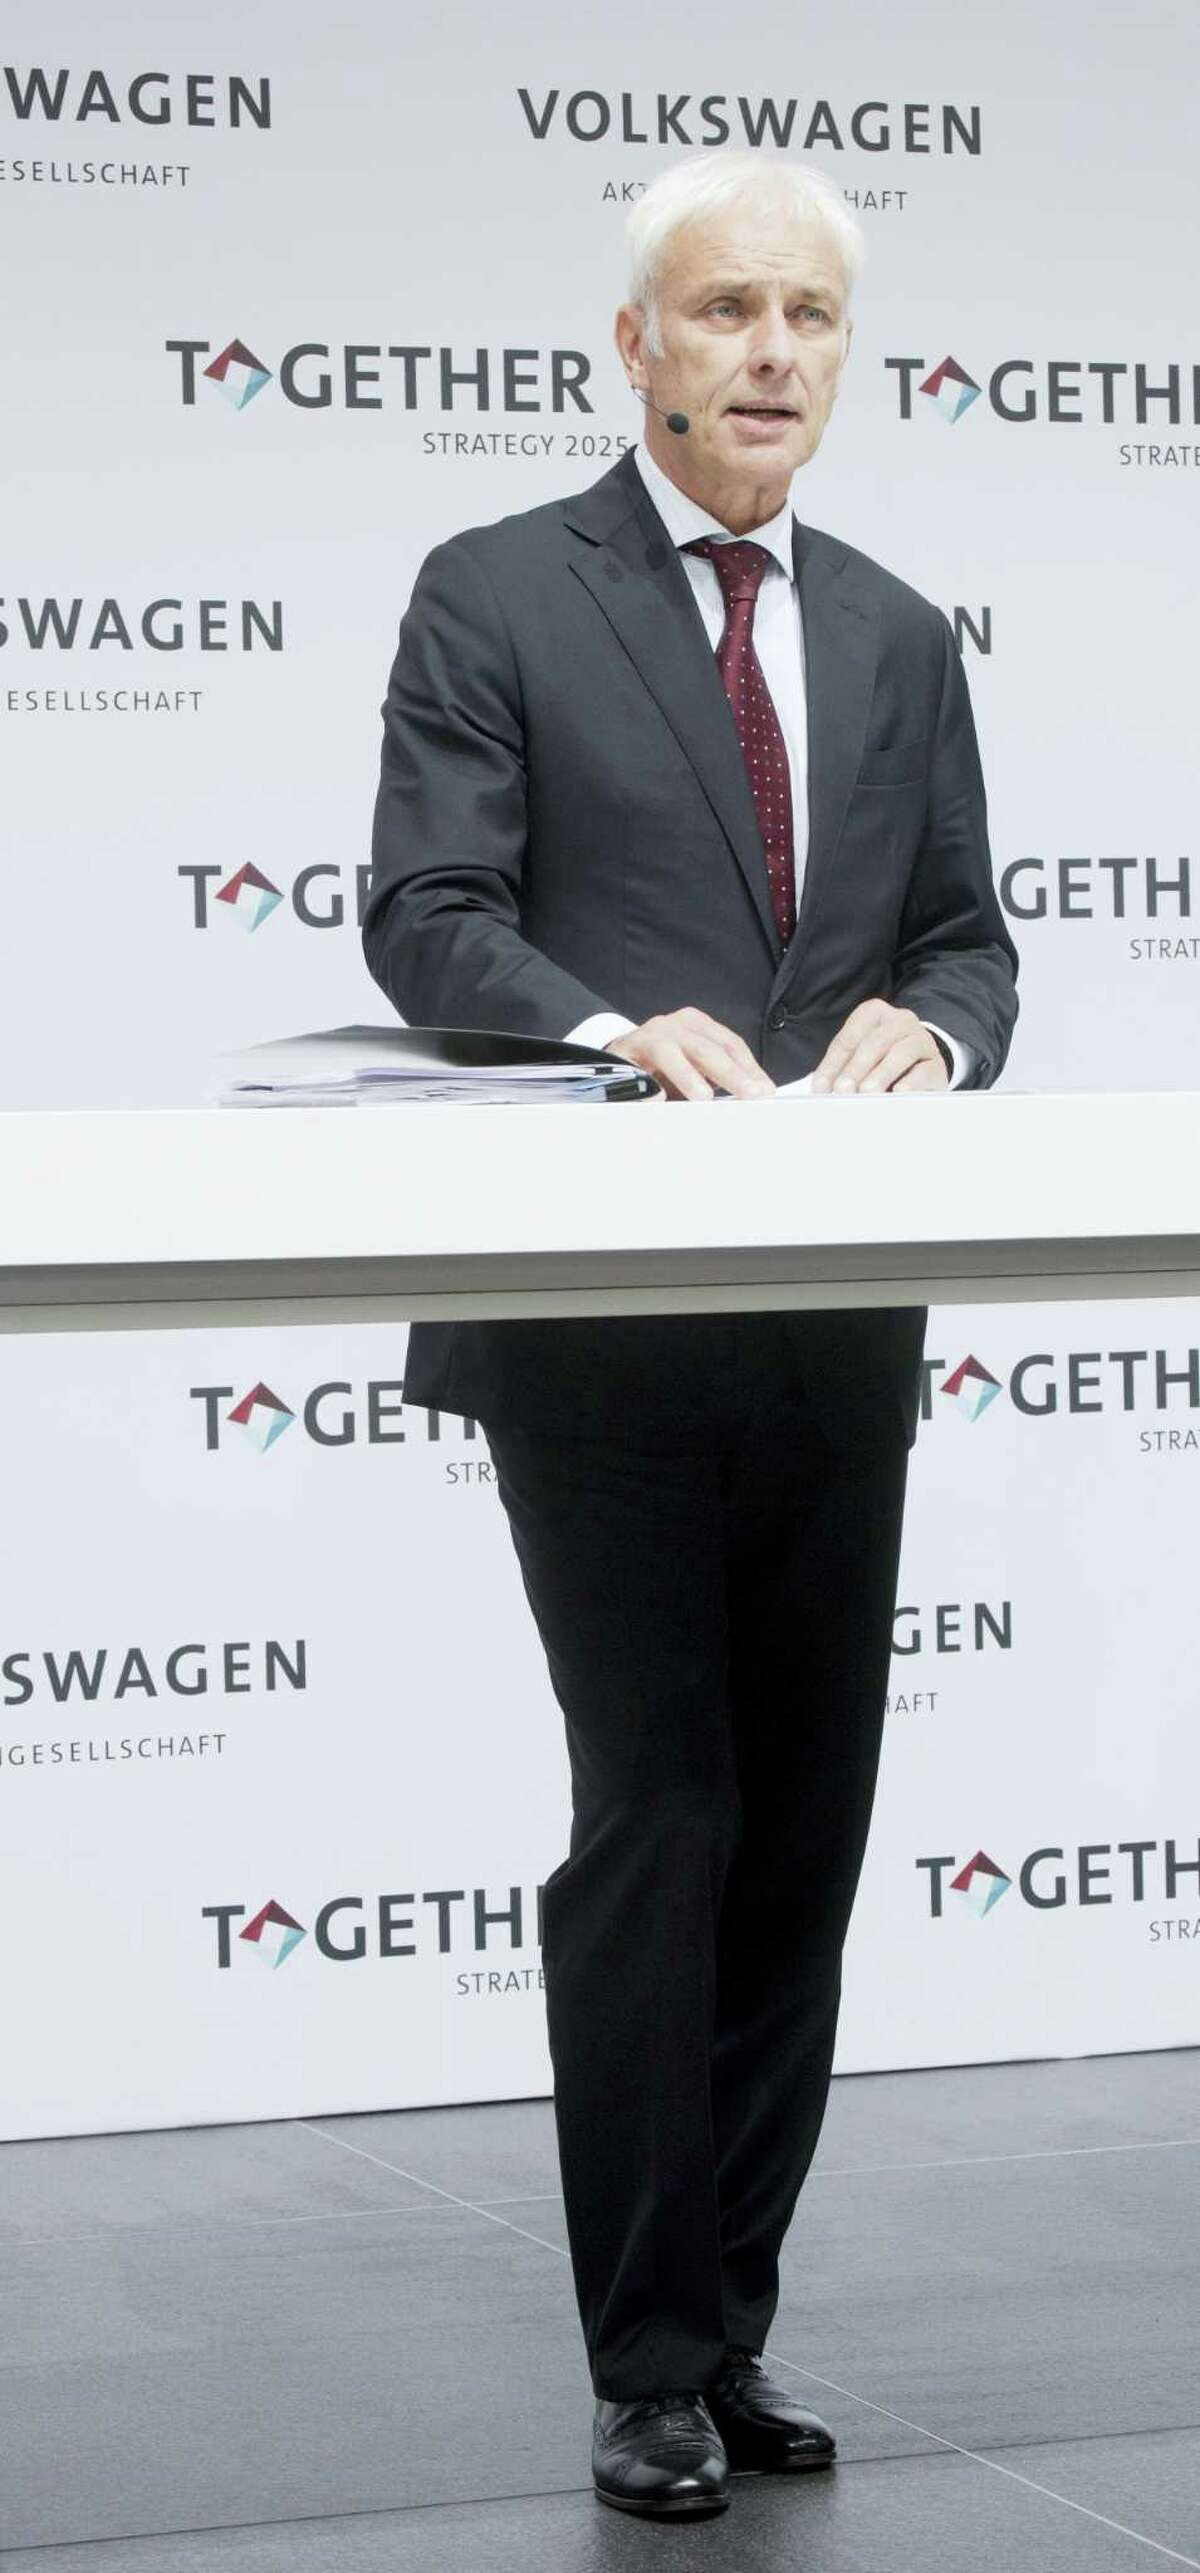 Volkswagen AG, CEO, Matthias Mueller, speaks at a news conference at the company's headquarters in Wolfsburg, Germany on June 16, 2016. Mueller said Thursday the company plans to introduce more than 30 electric-powered vehicles by 2025, and to sell 2 to 3 million of them a year.